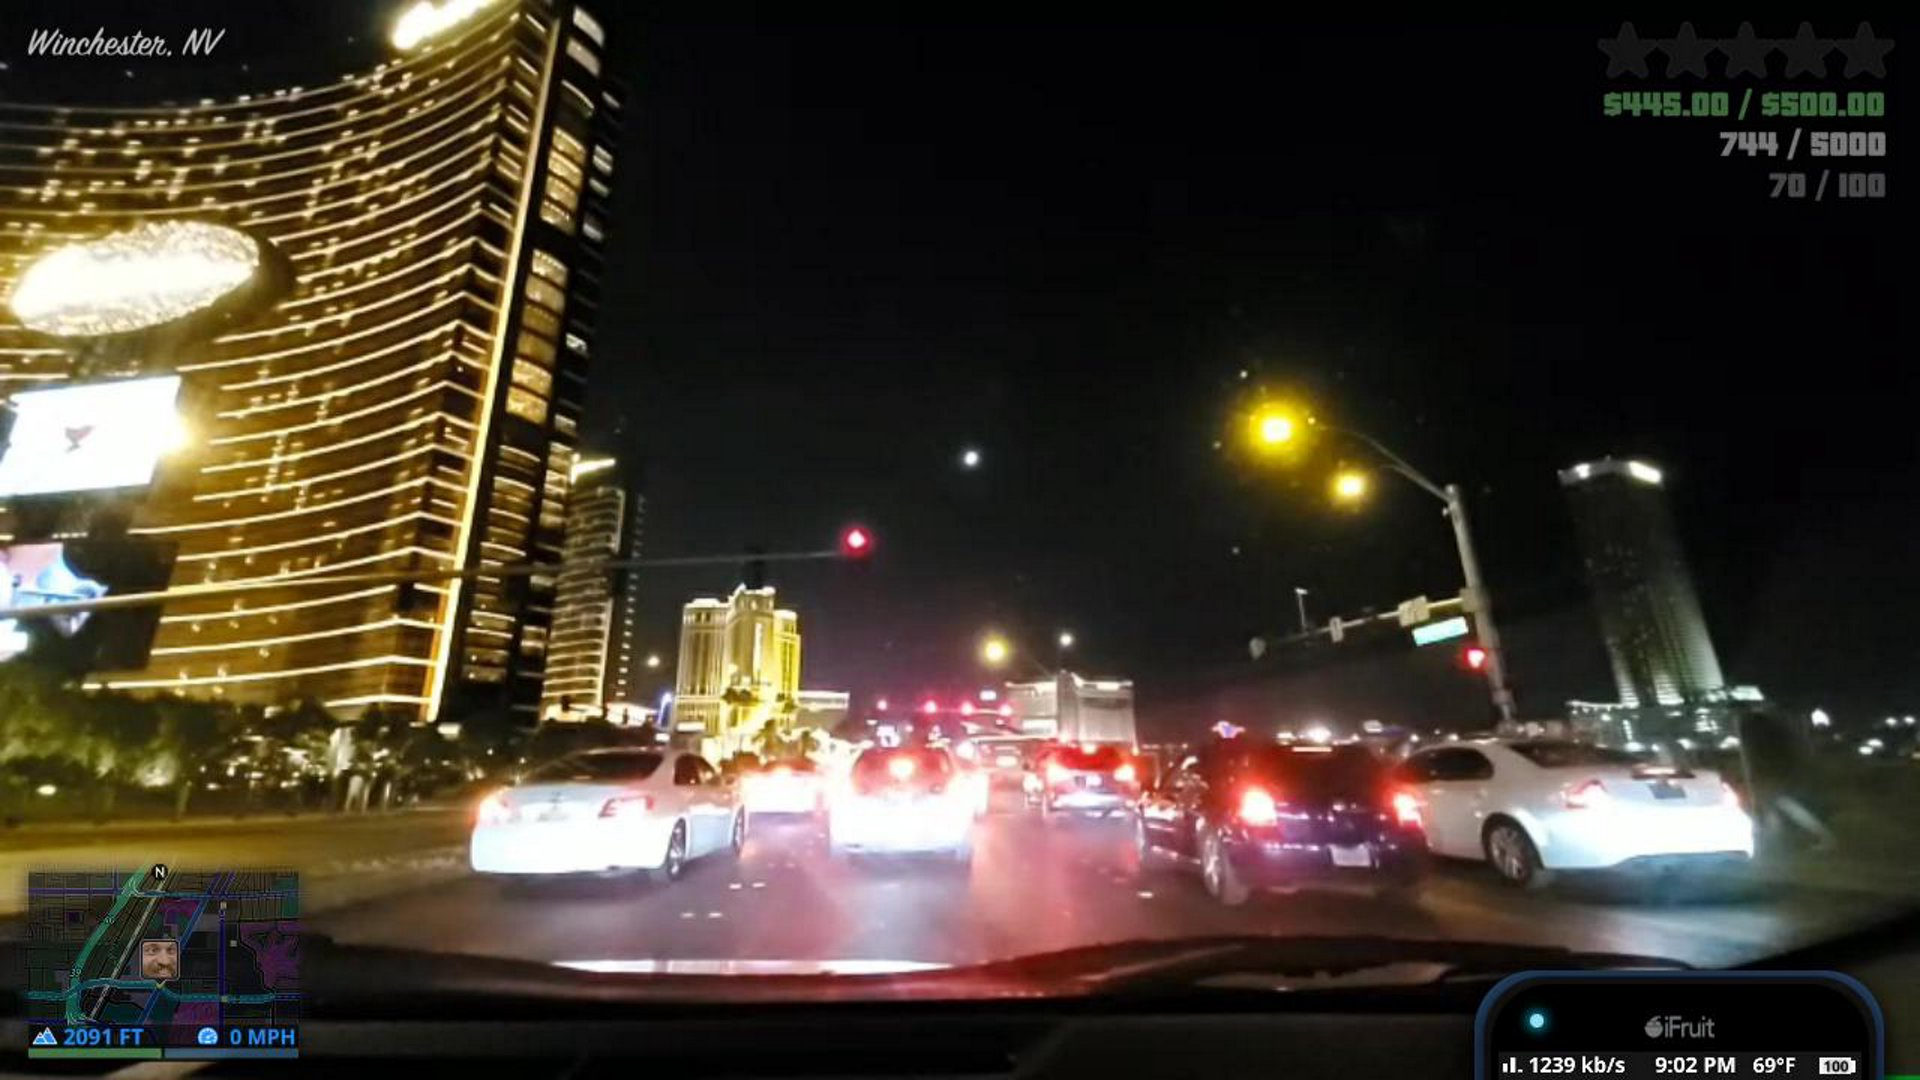 meetup-with-vegas_penguin-discord-bttv-sub-donate-luv-travel-outdoors-2710-https-t-co-vd0oa49ohd-https-t-co-hw9yacnpve